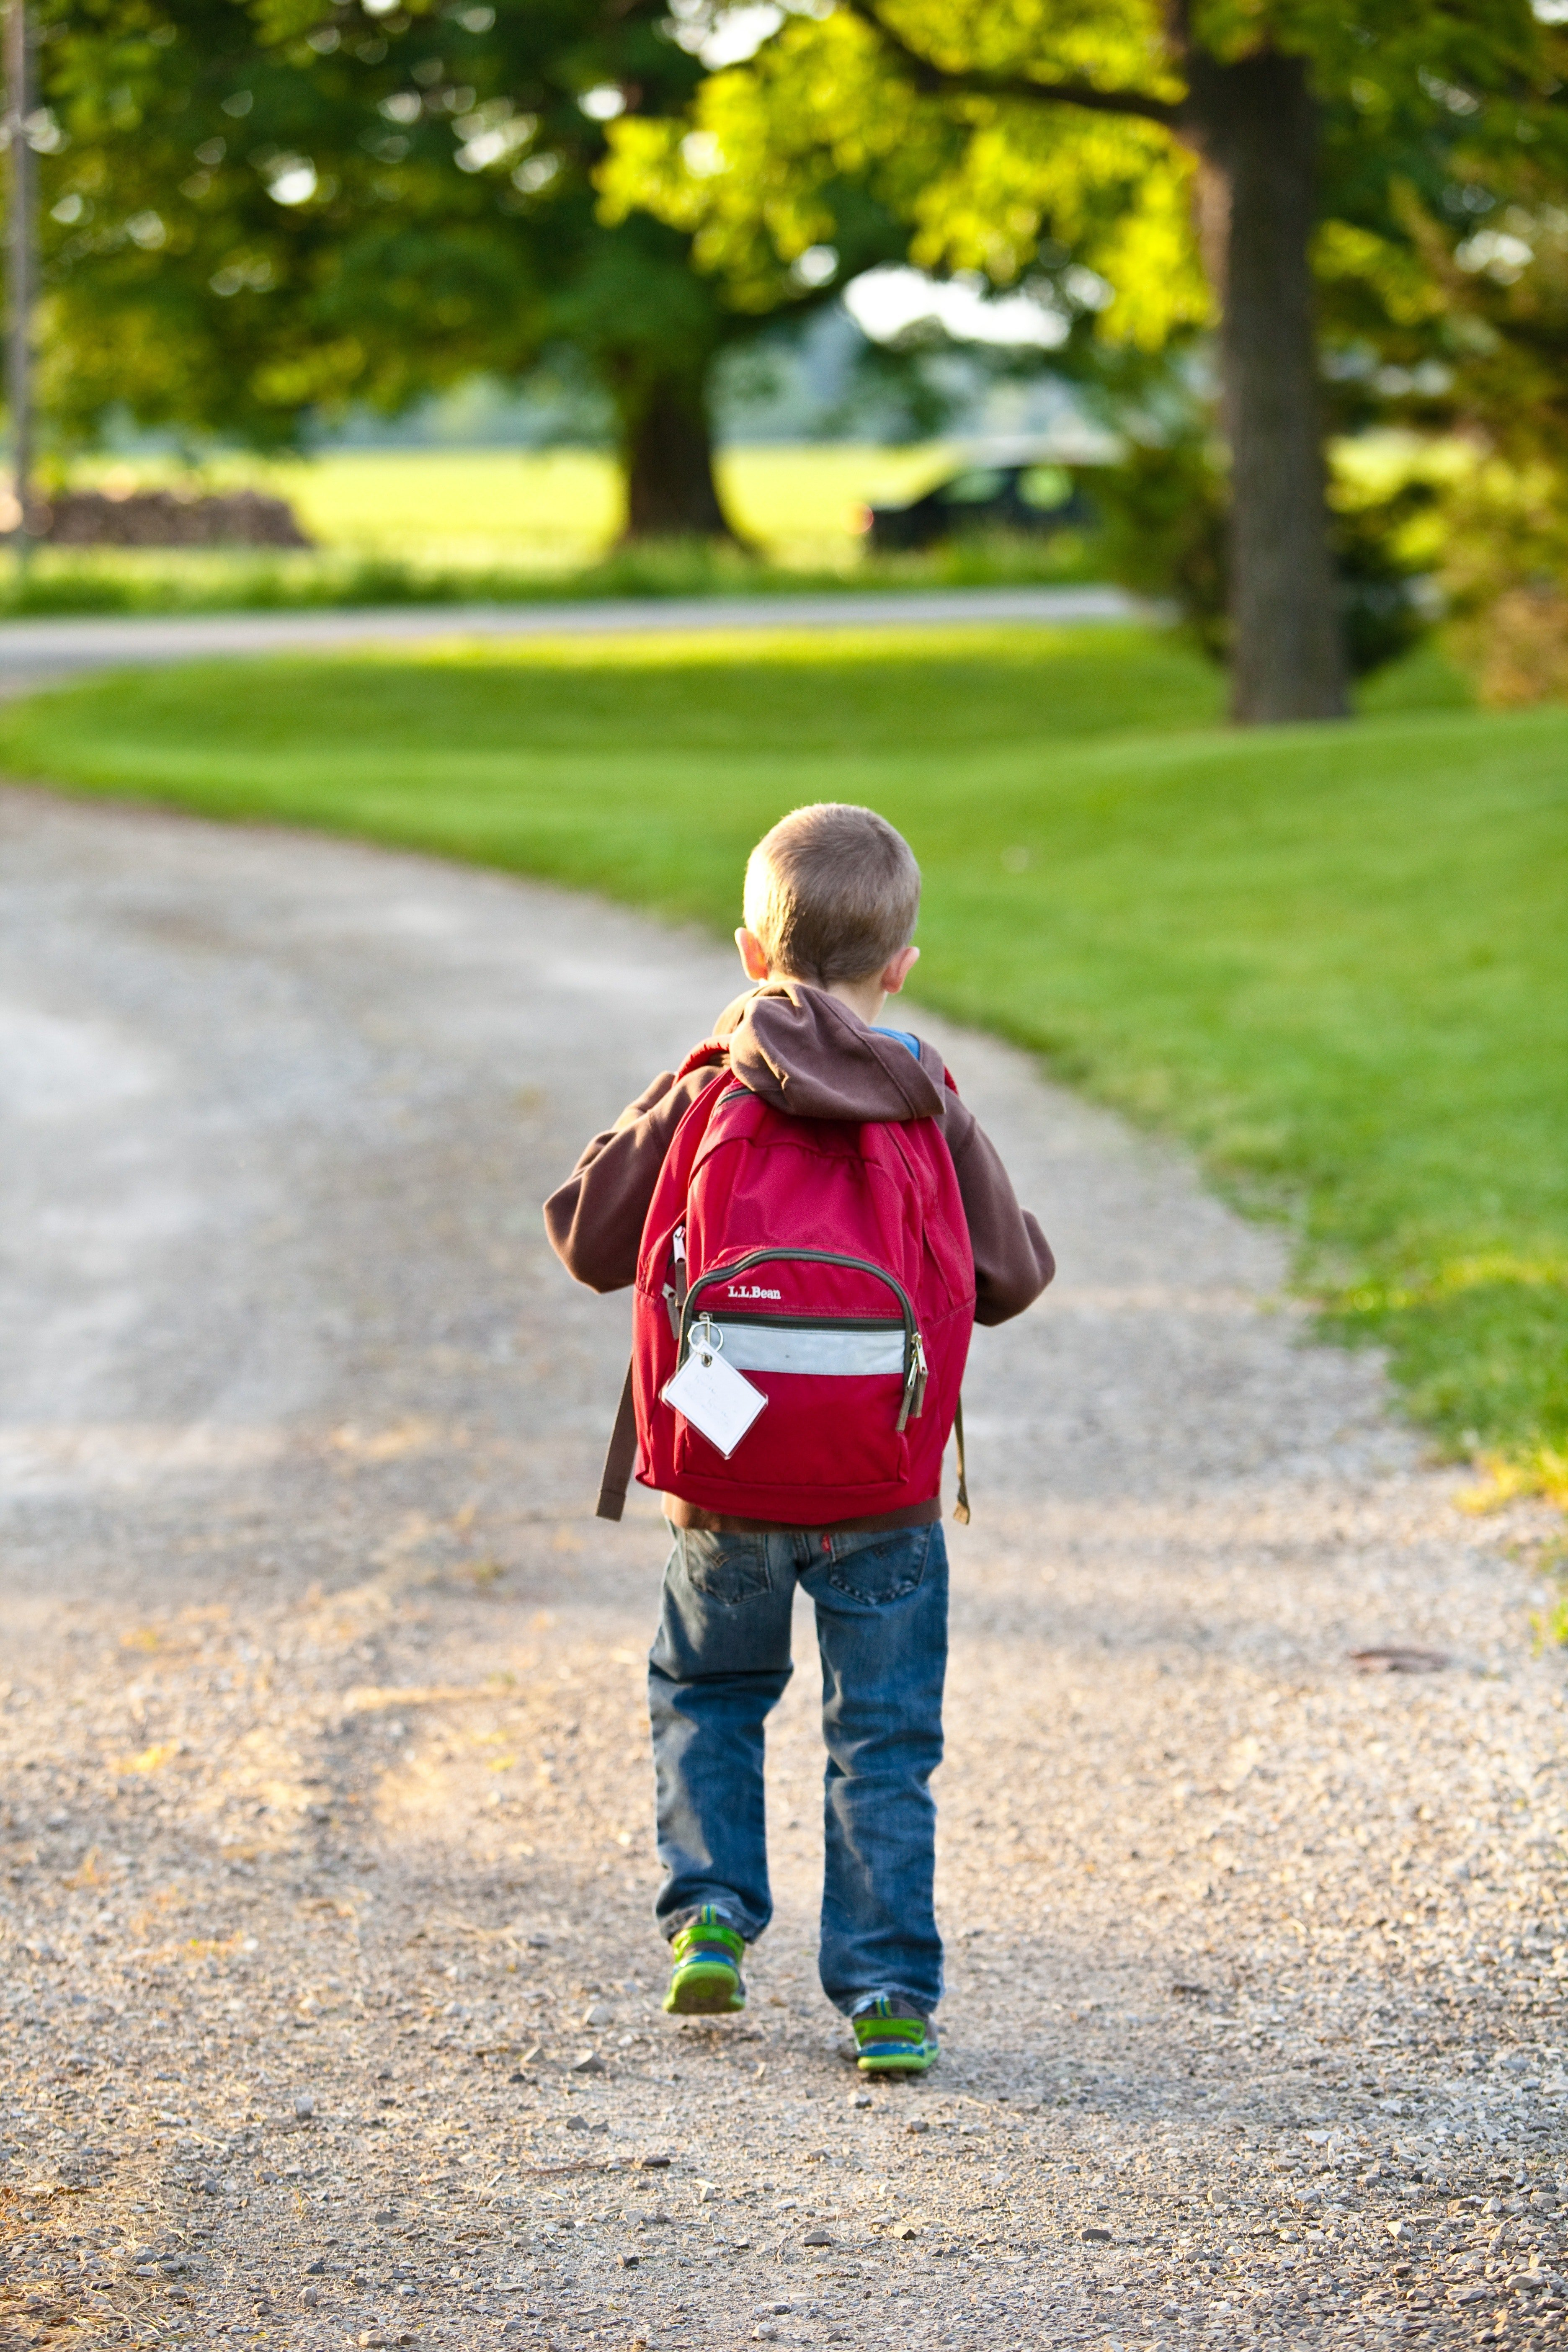 A young boy walking to school carrying his backpack. | Source: Pexels